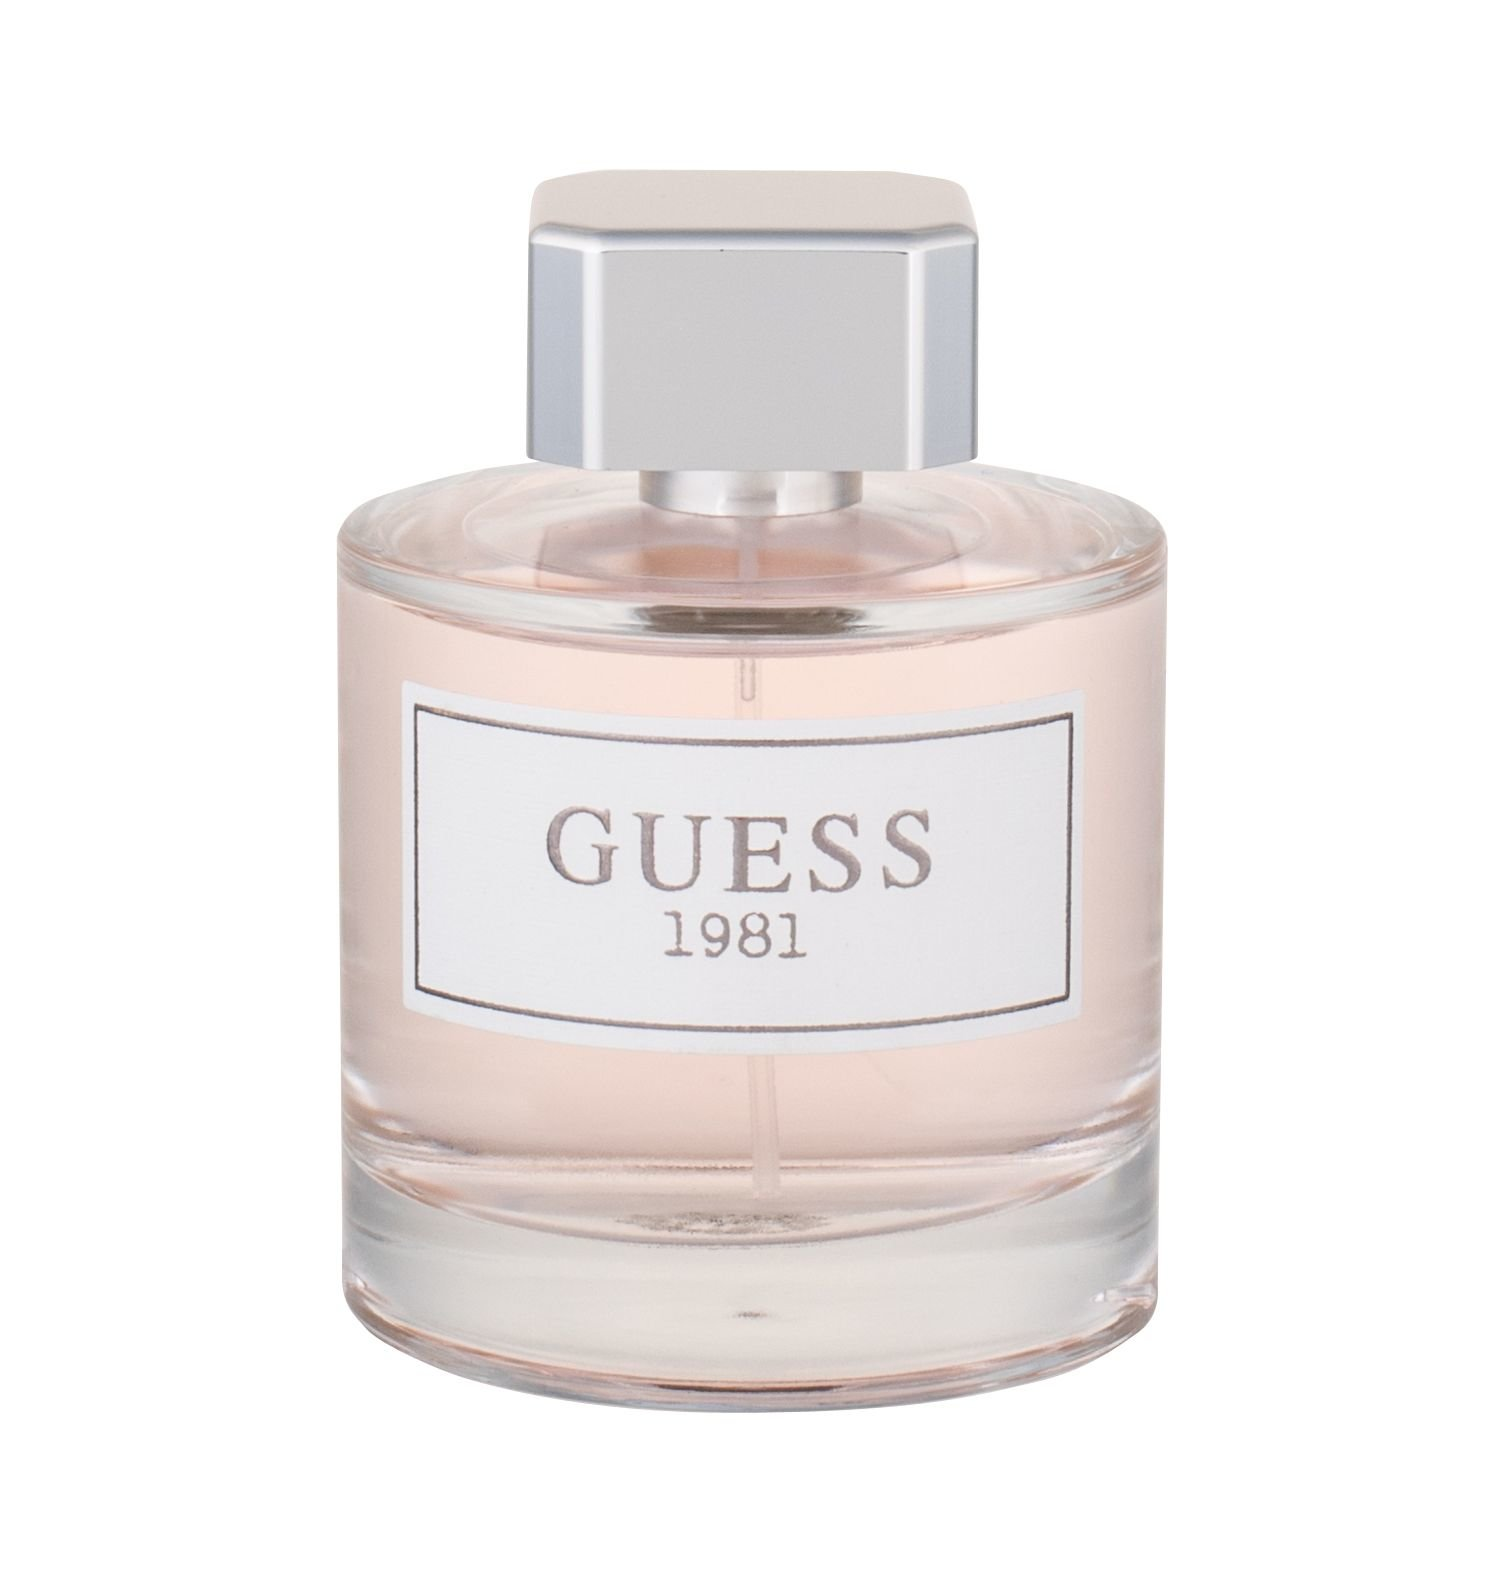 GUESS Guess 1981 EDT 100ml